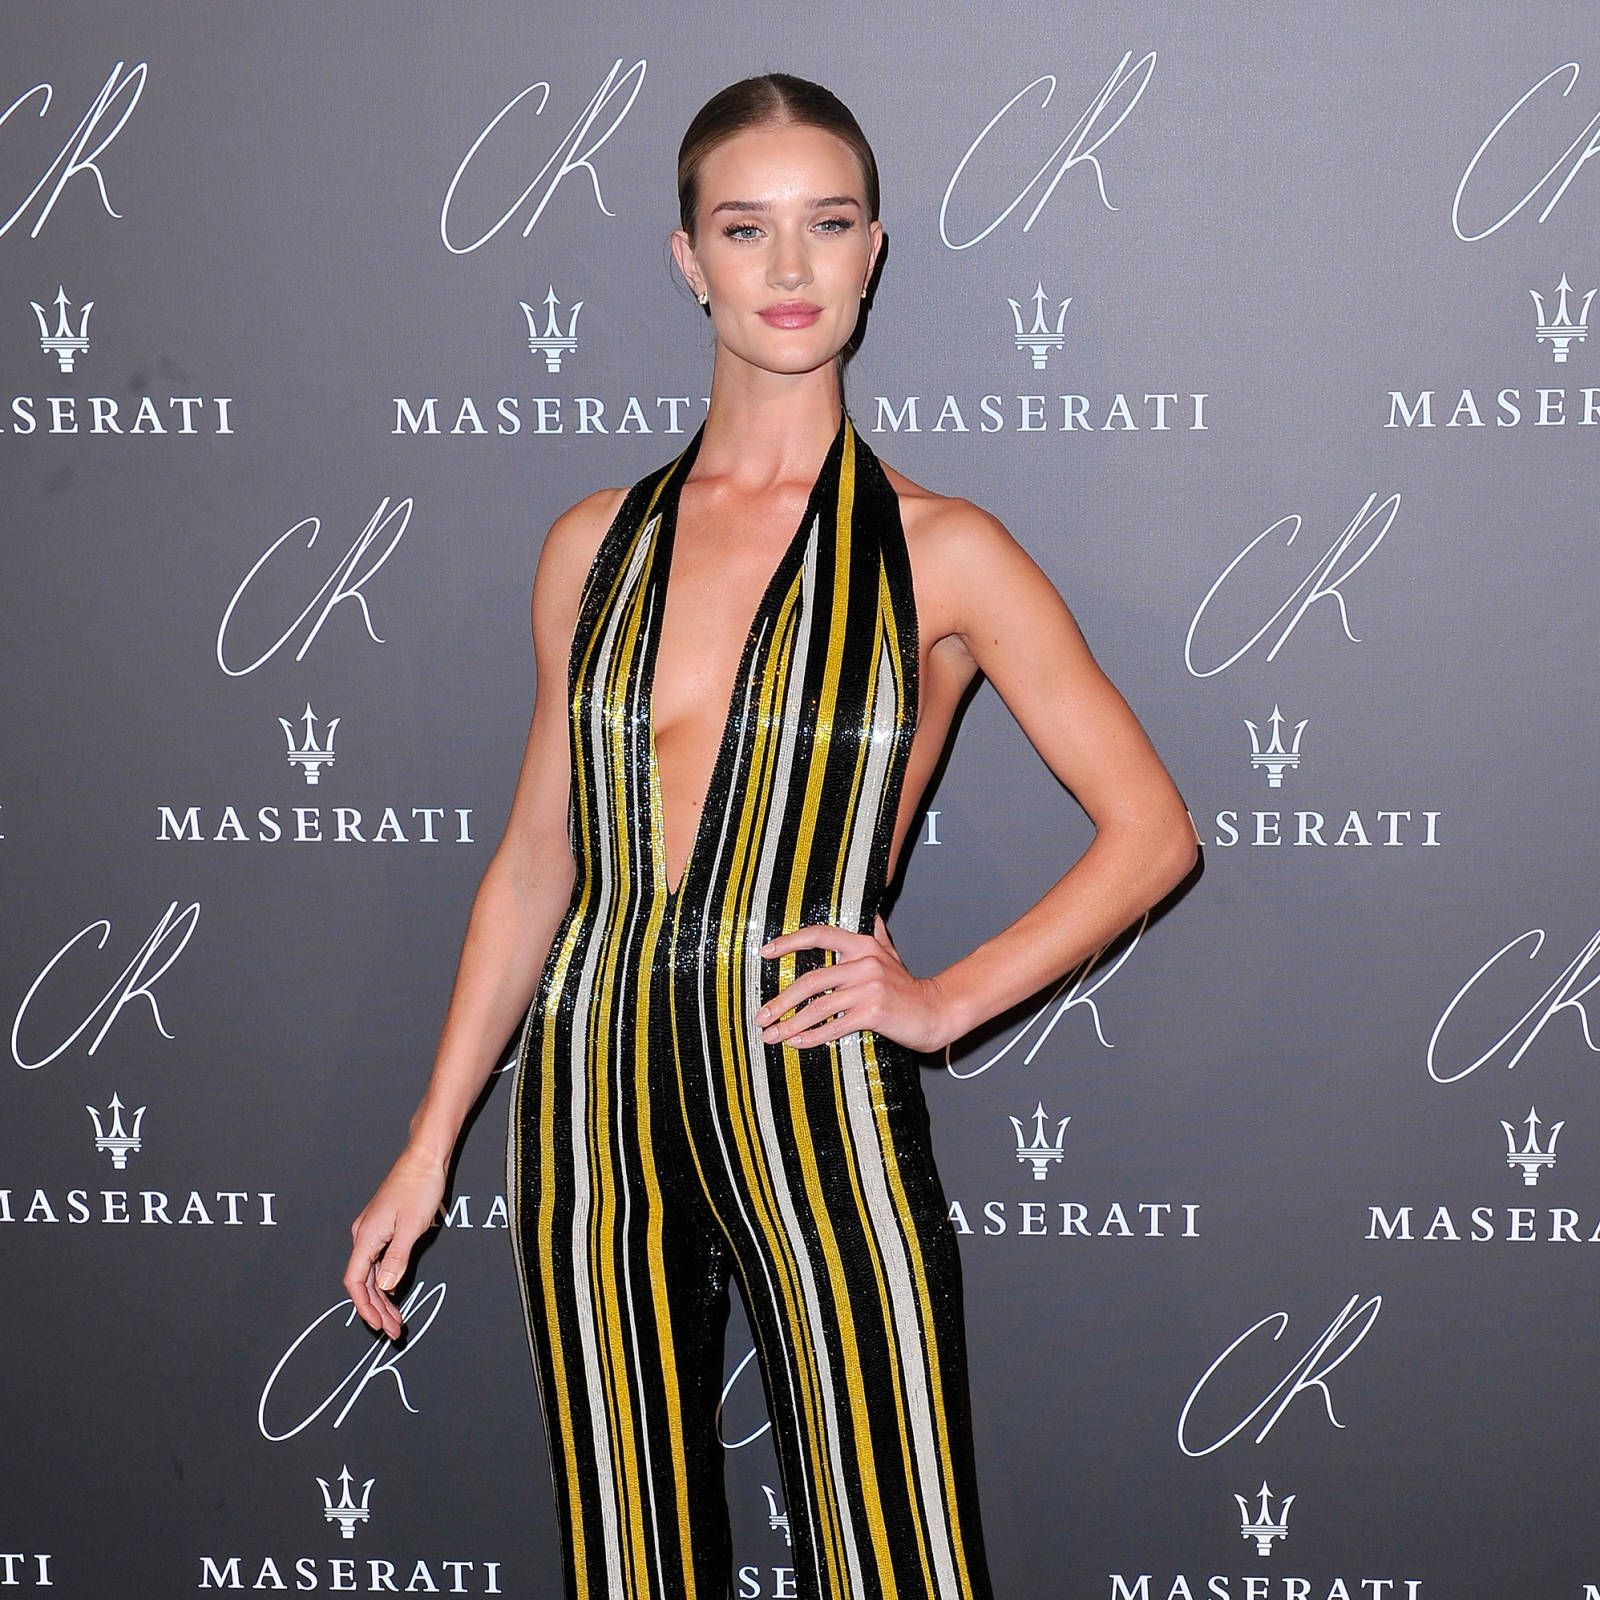 Rosie Huntington-Whiteley at the CR Fashion Book launch